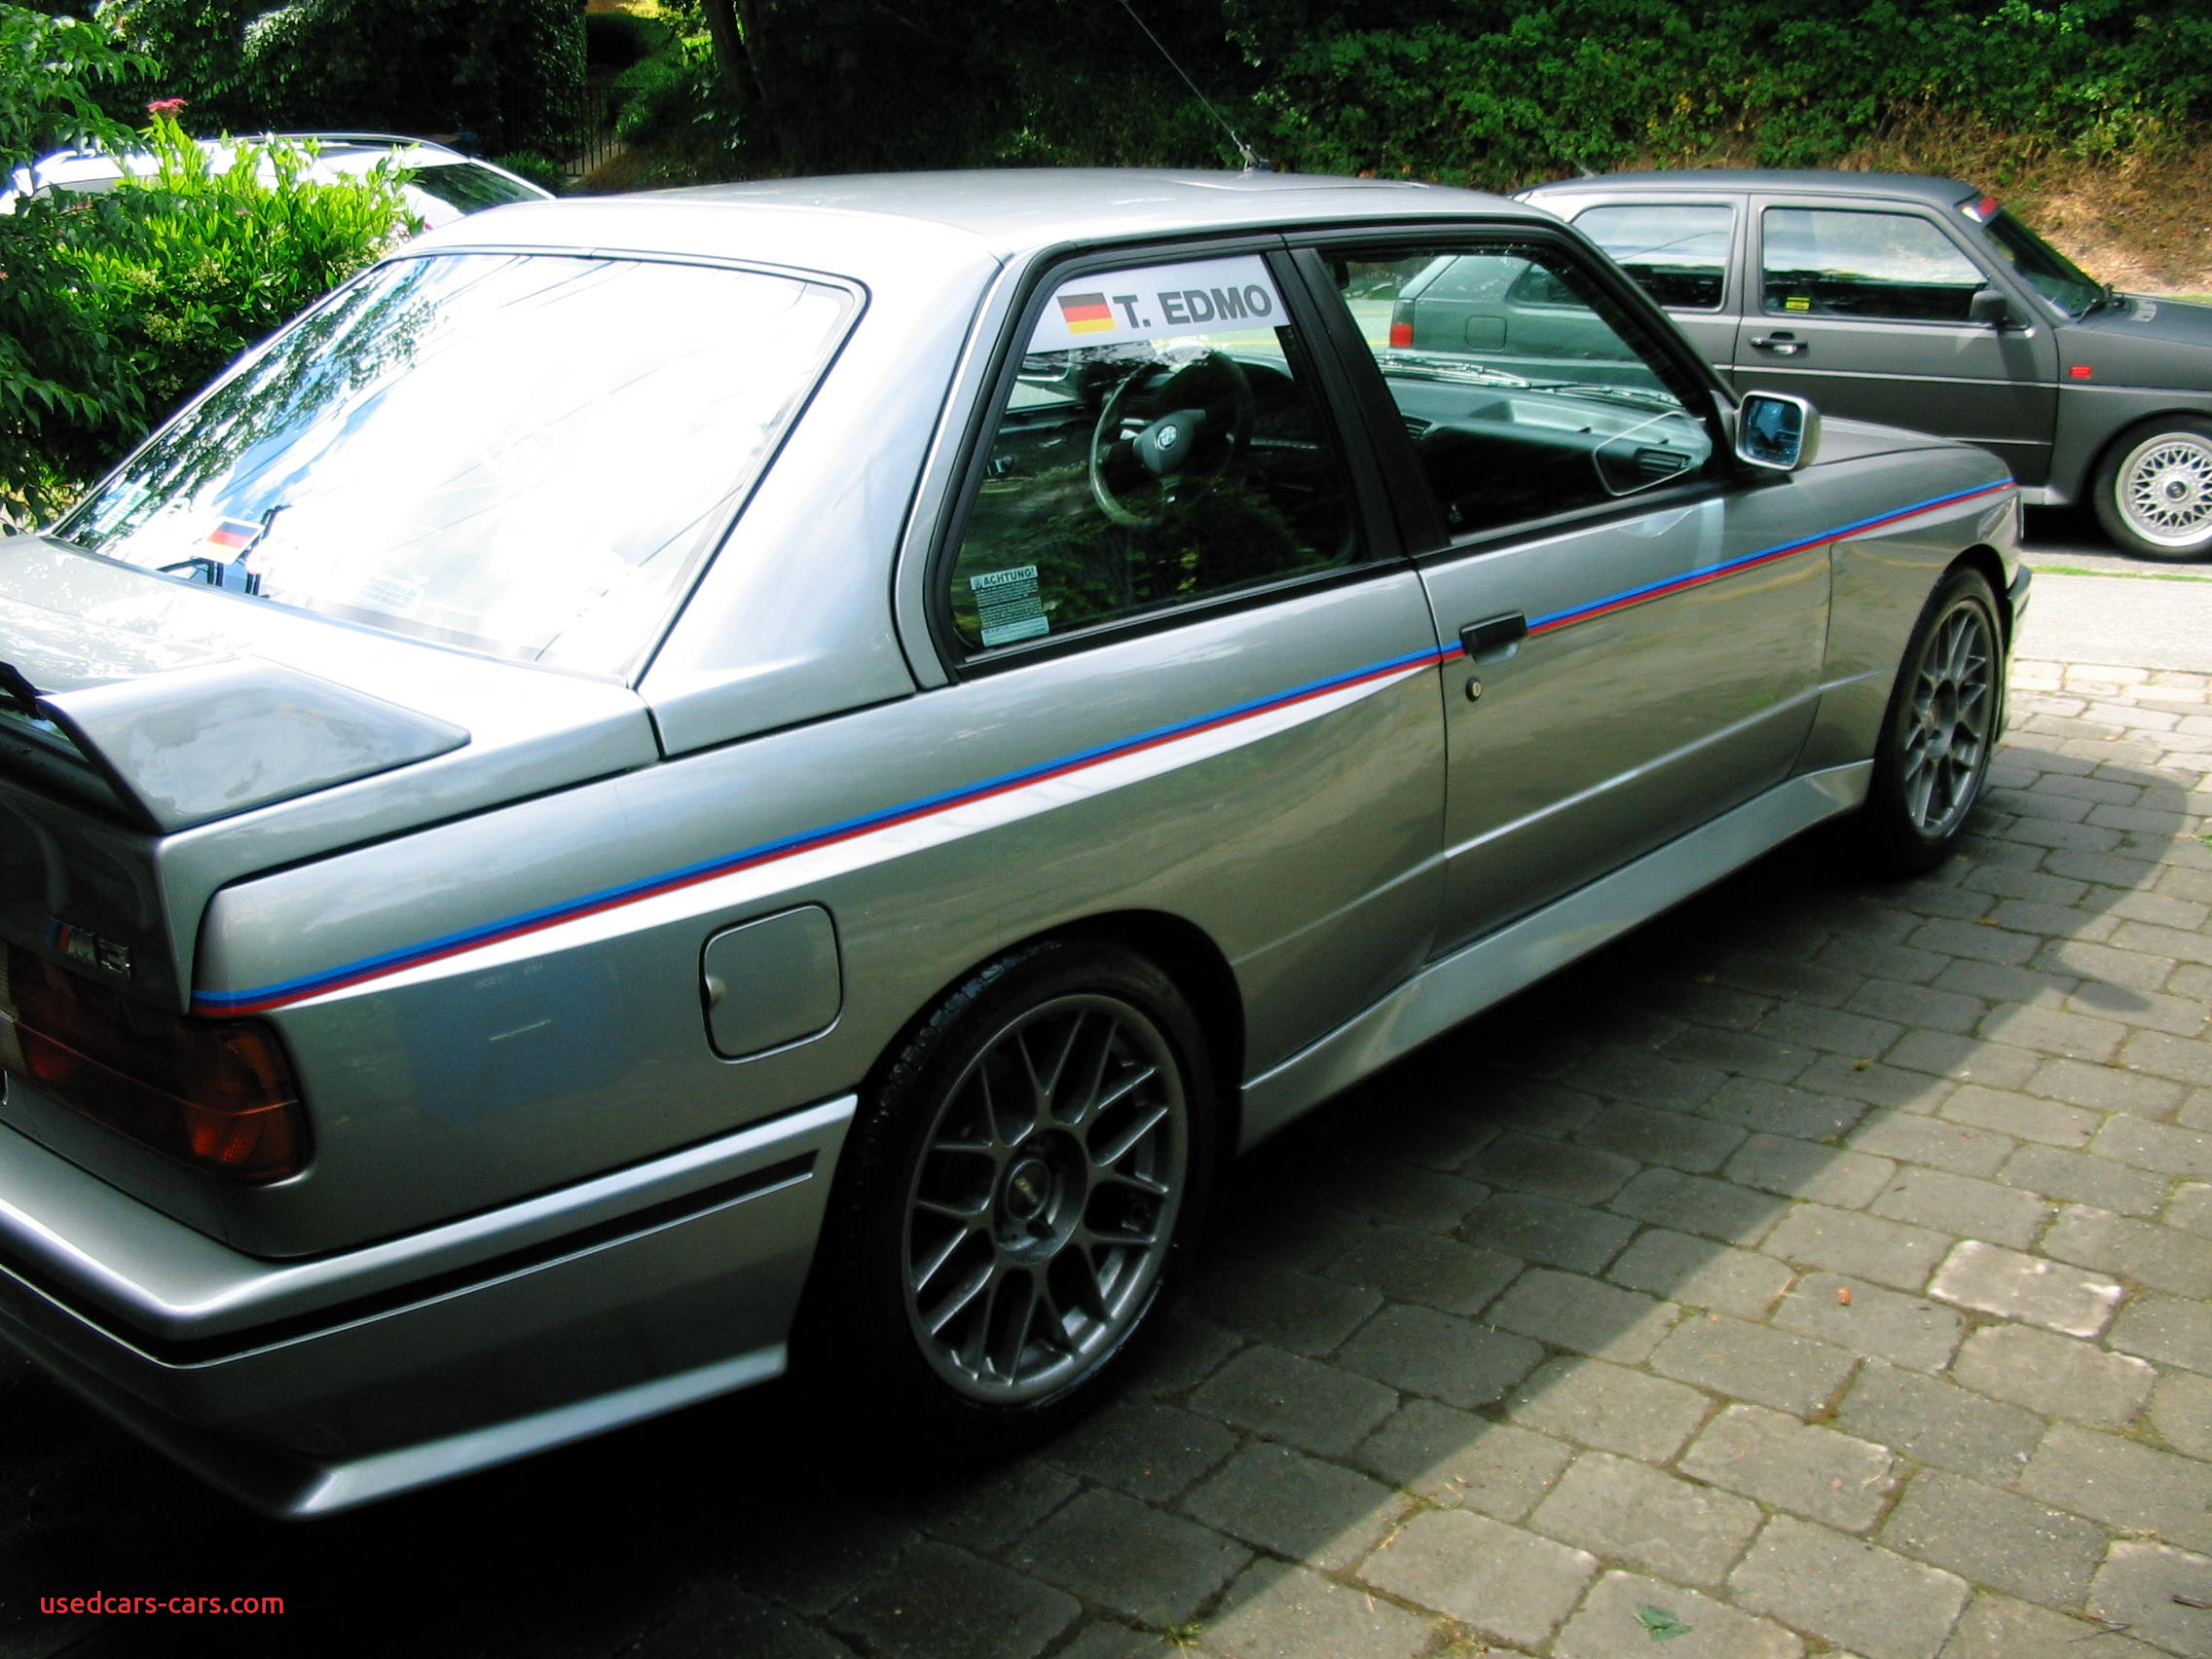 Bmw M3 1988 Best Of 1988 Bmw M3 Silver Tricolor3 – German Cars for Sale Blog